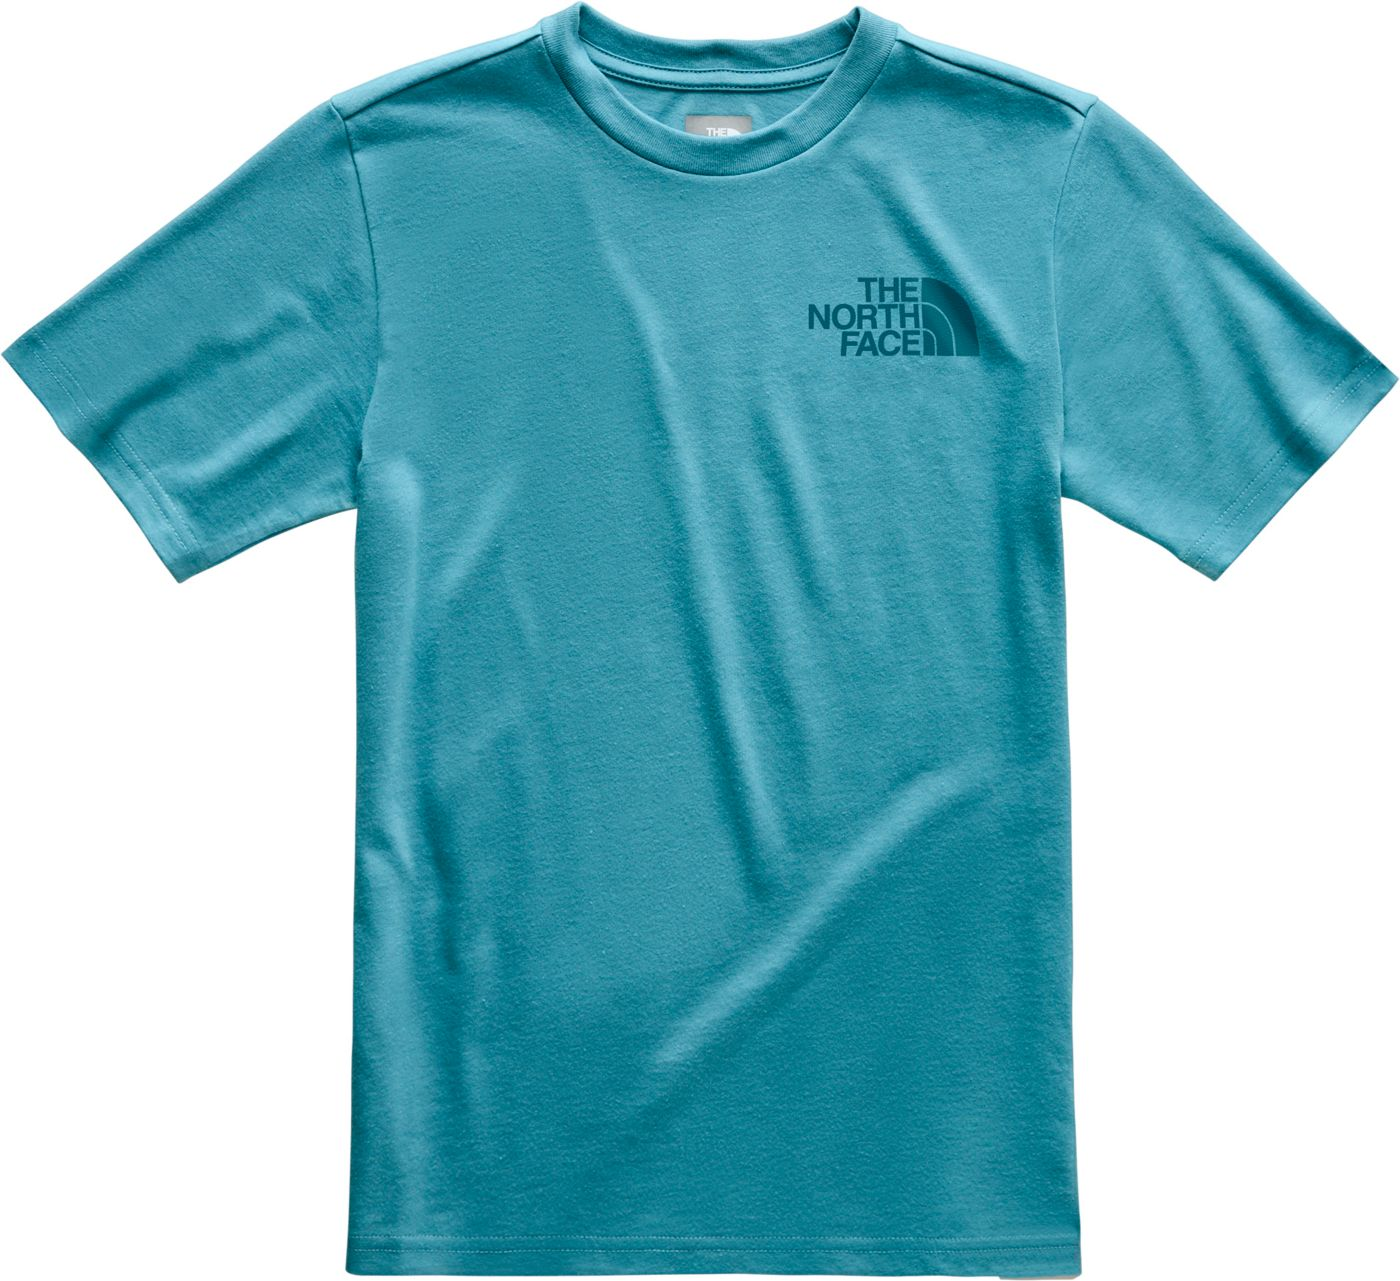 The North Face Boys' Short Sleeve Bottle Source T-Shirt